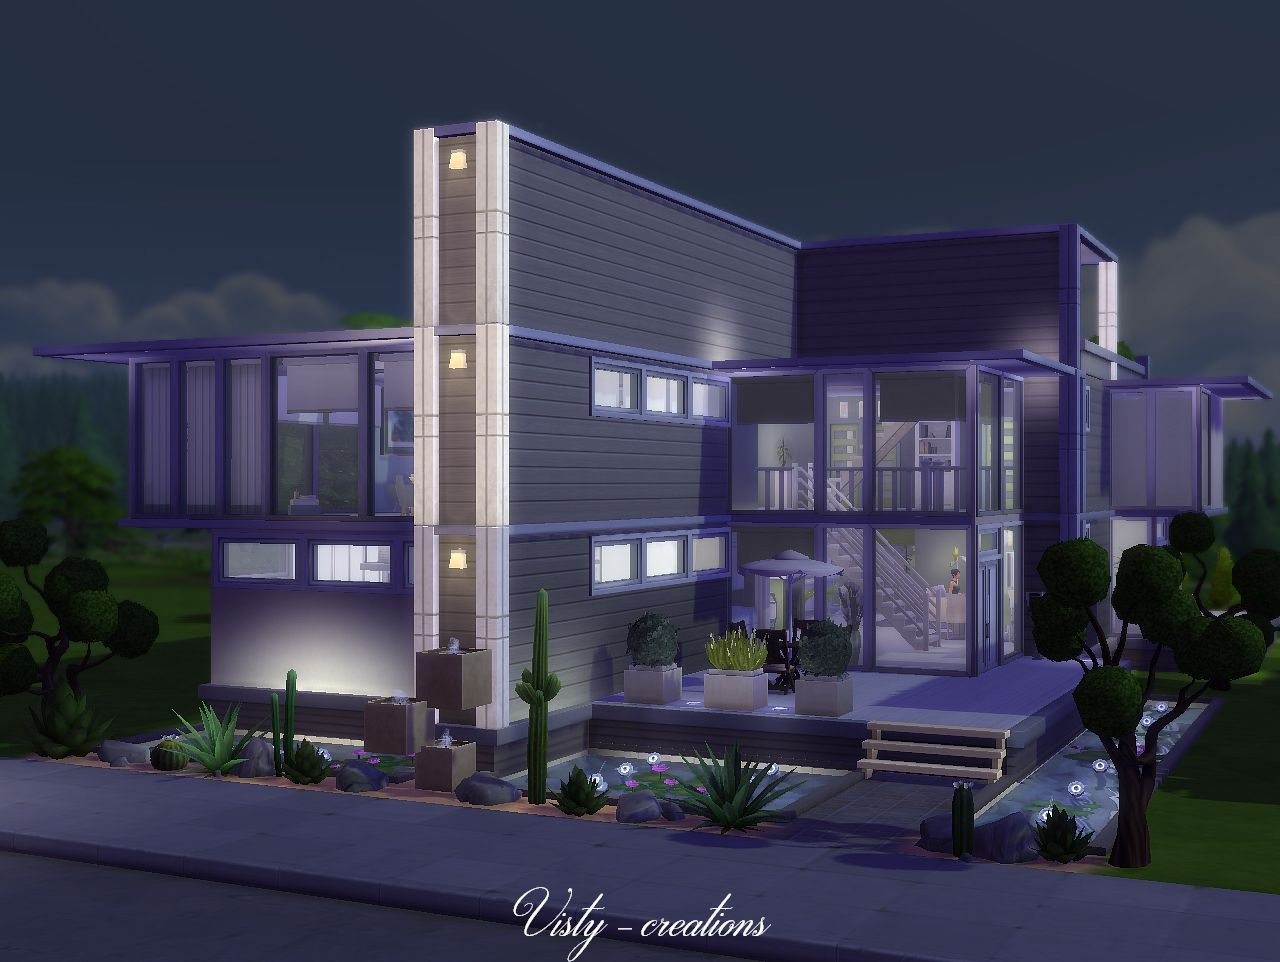 My Sims 4 Blog Modern Life and Tropical Wind Houses No CC by Visty6